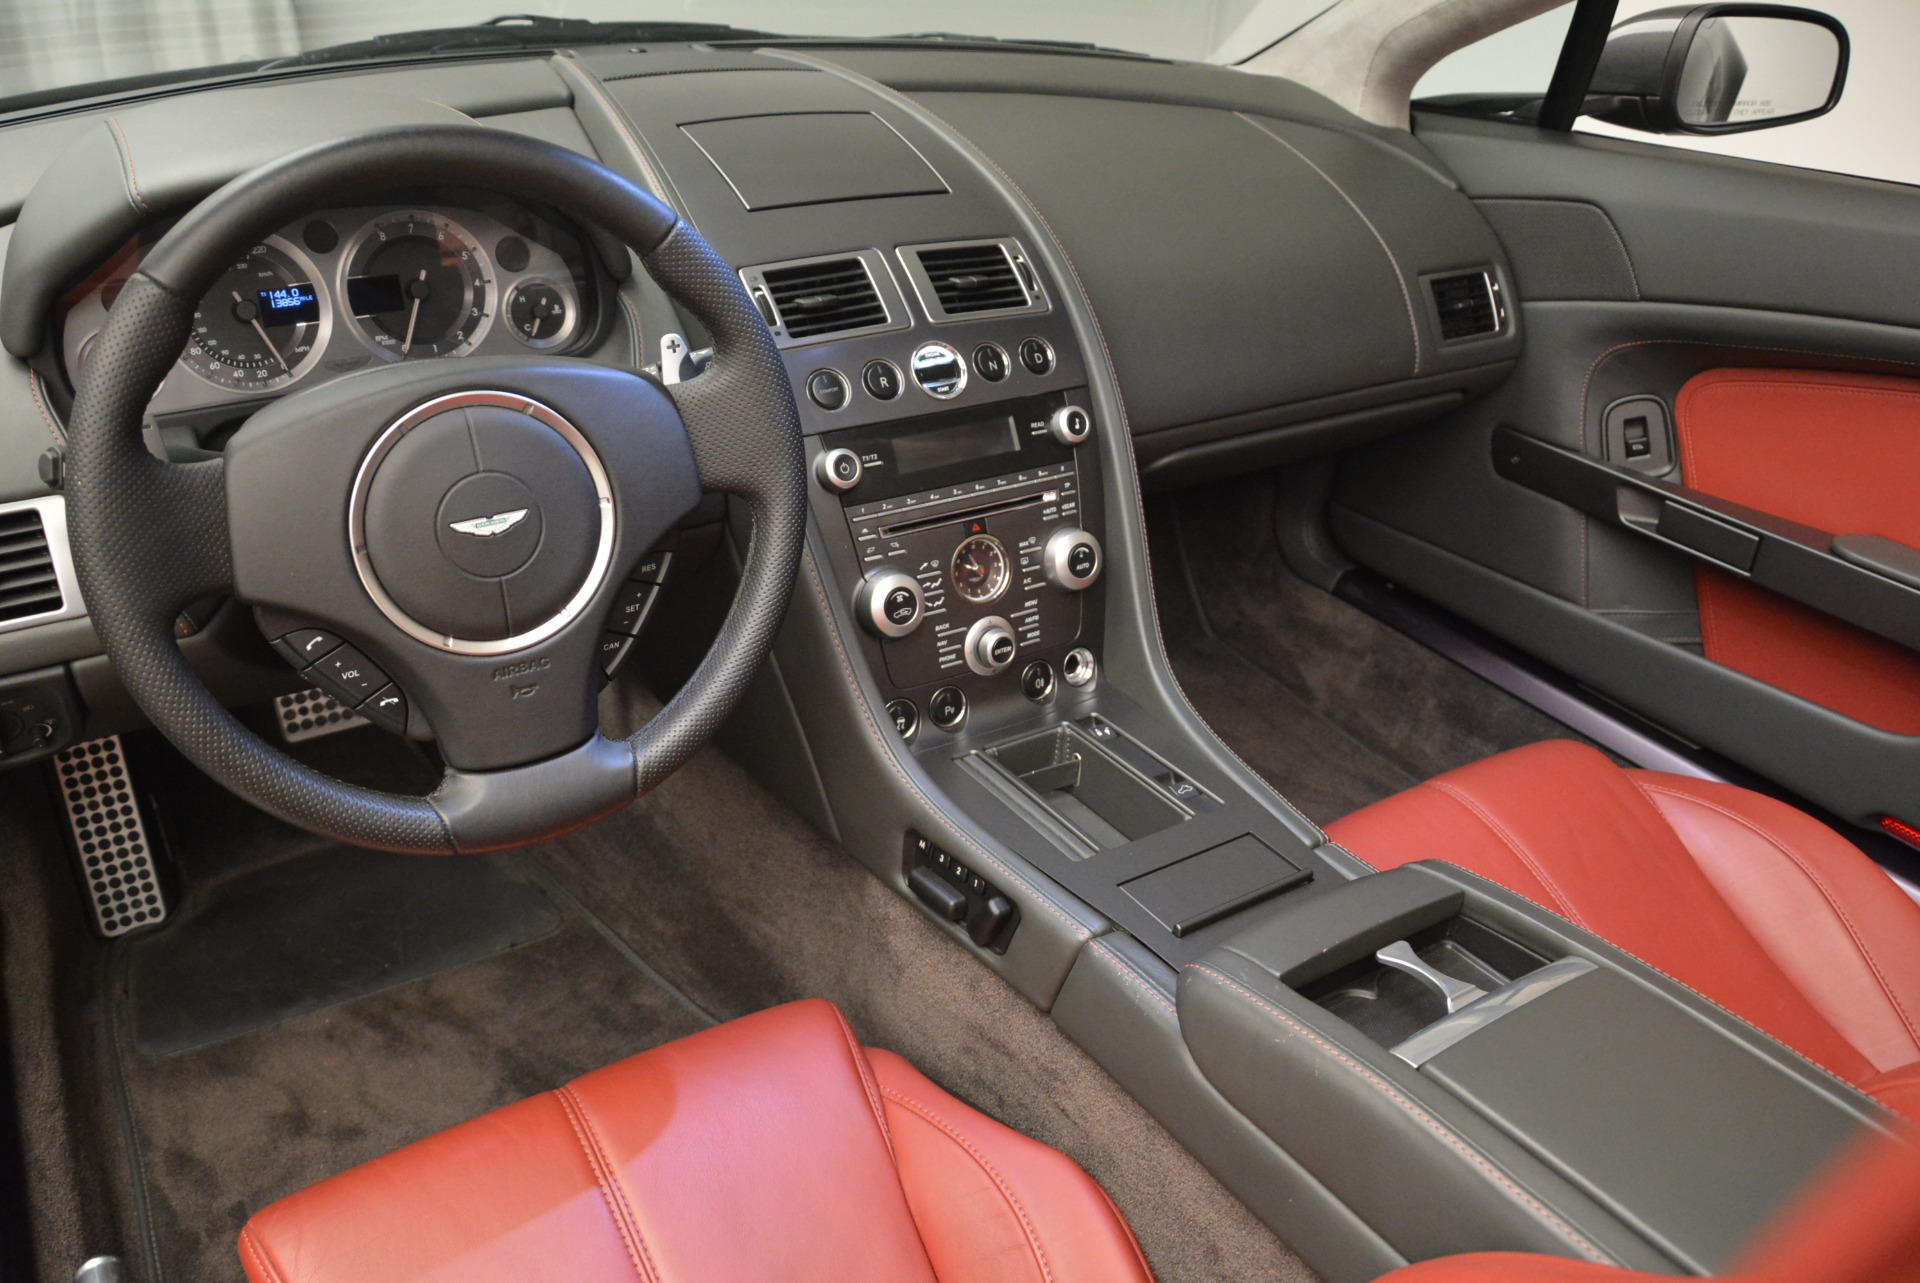 Used 2009 Aston Martin V8 Vantage Roadster For Sale In Greenwich, CT. Alfa Romeo of Greenwich, 7333 2123_p26